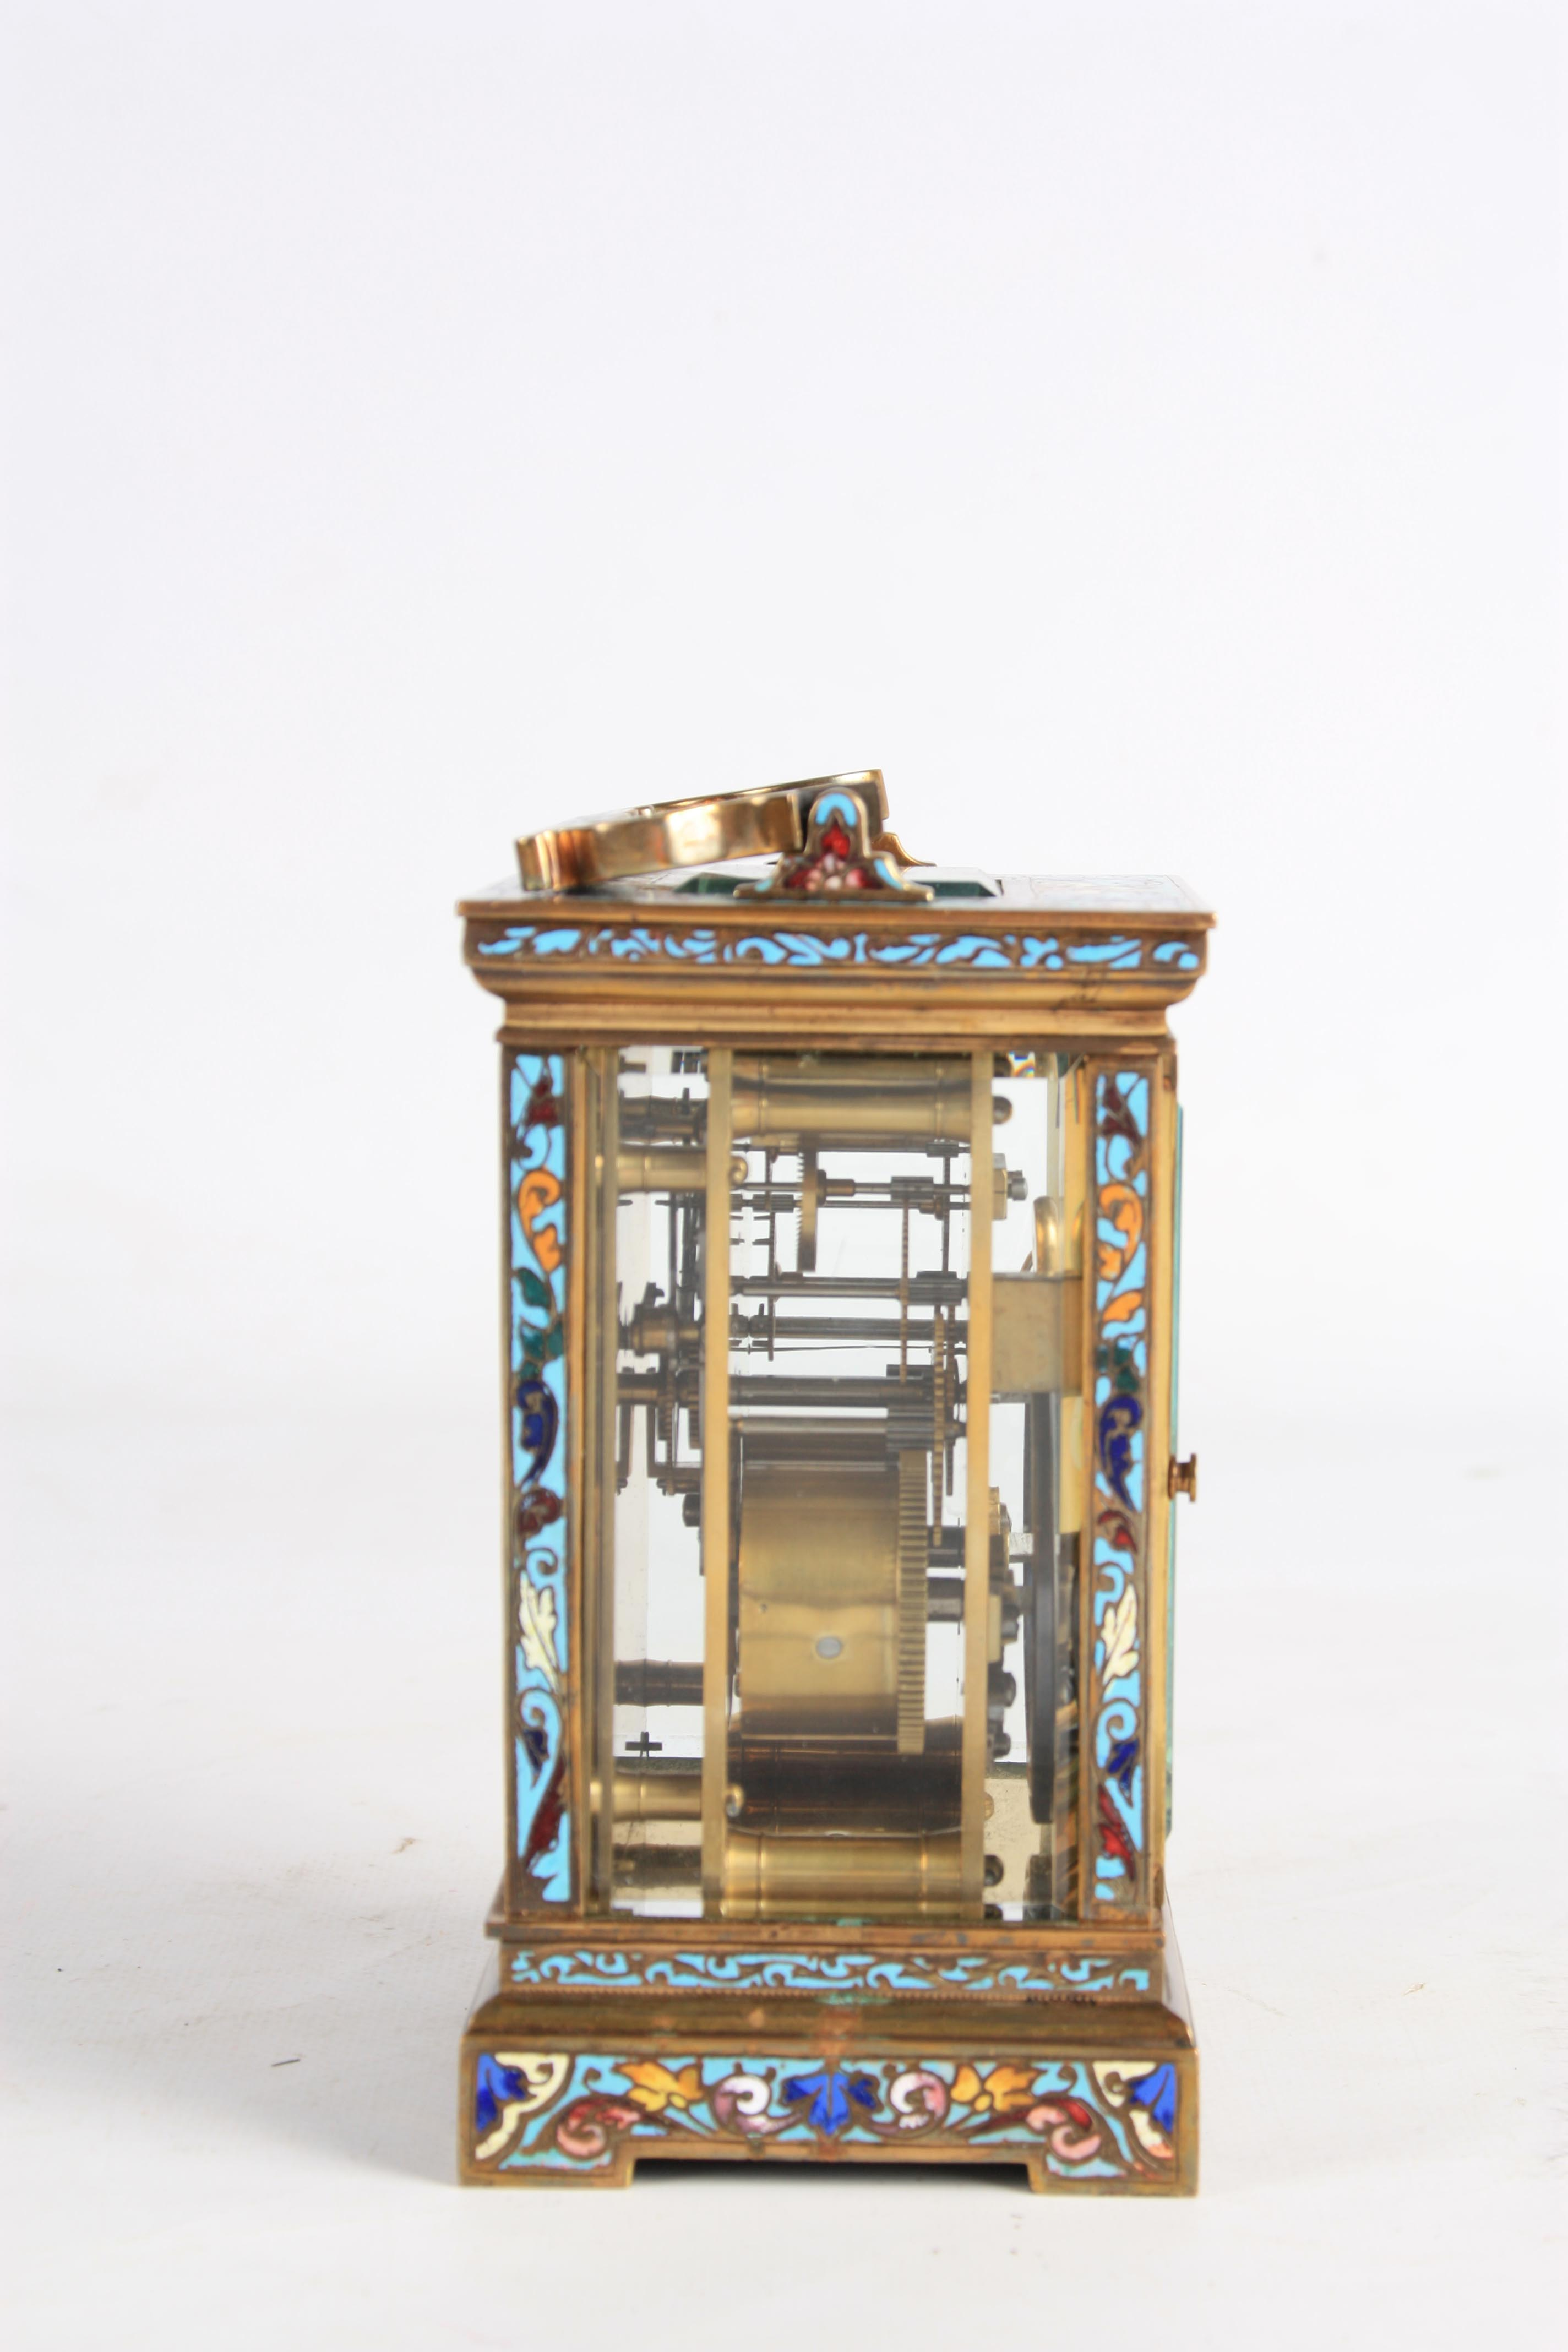 A LATE 19TH CENTURY FRENCH CHAMPLEVE ENAMEL STRIKING CARRIAGE CLOCK the case covered in champleve - Image 6 of 6